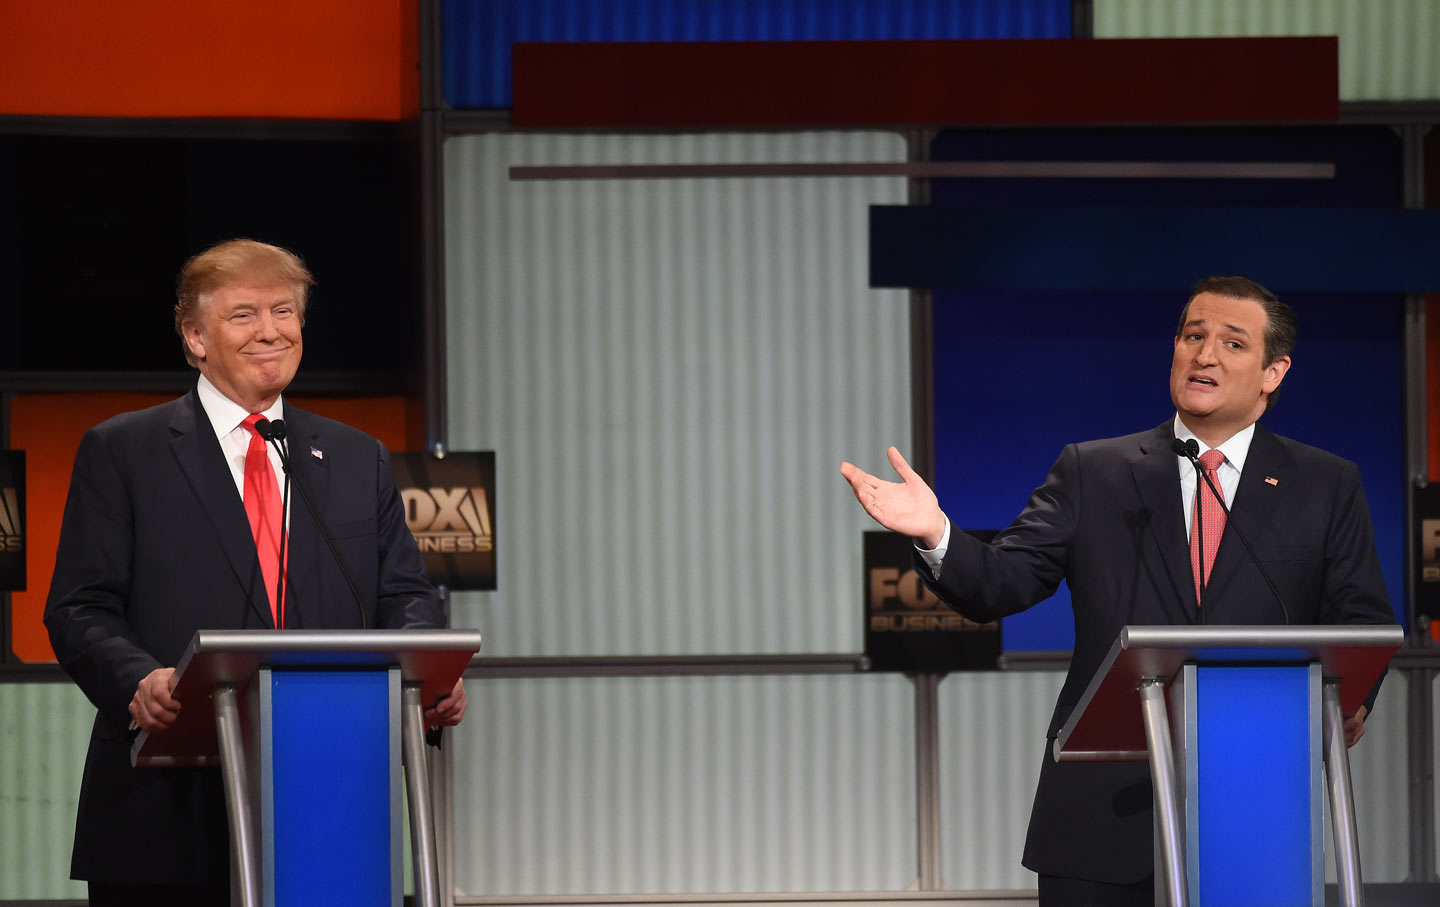 Donald Trump speaks as  Senator Ted Cruz looks on during the Fox Business Network Republican presidential debate at the North Charleston Coliseum, on Thursday, January 14, 2016.  (AP Photo / Rainier Ehrhardt)